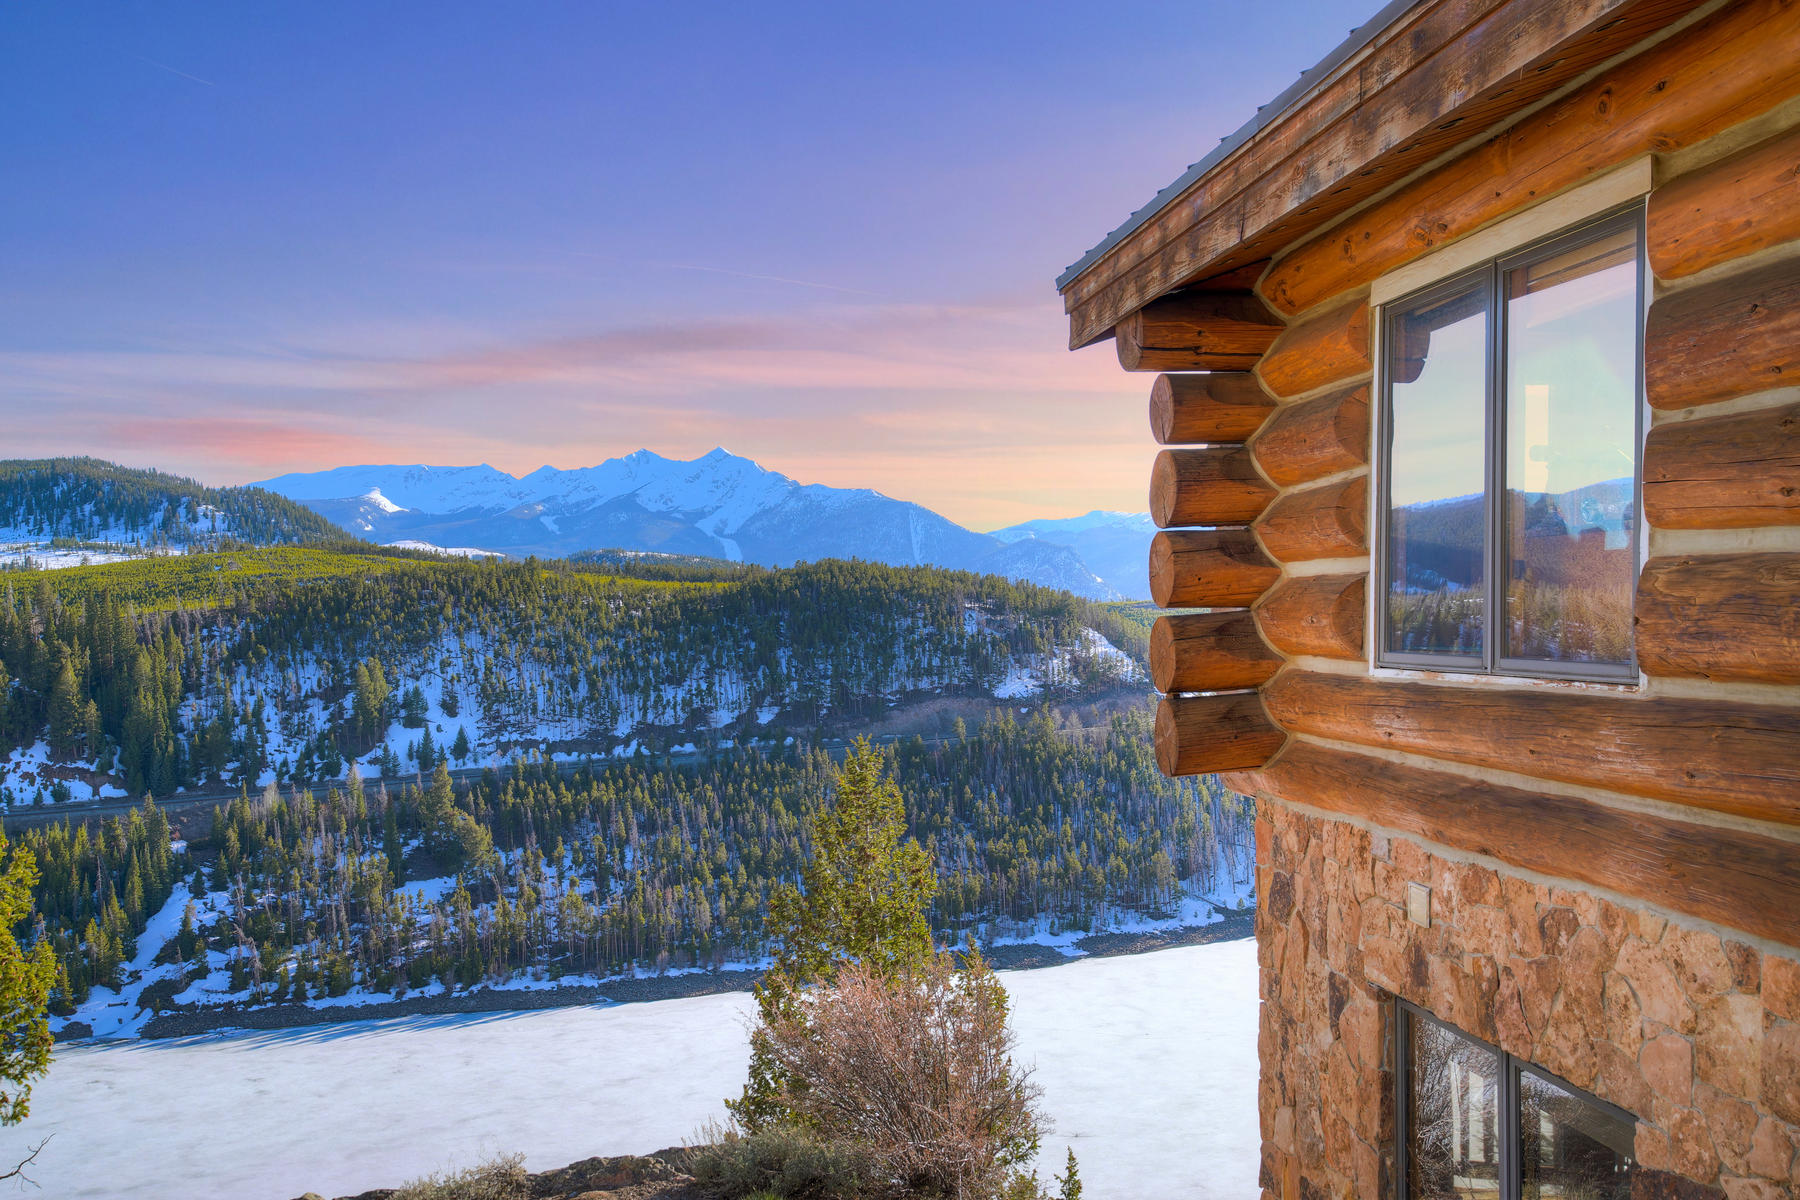 Single Family Homes for Sale at Stunning Views of Lake Dillon 263 High Meadow Drive Dillon, Colorado 80435 United States